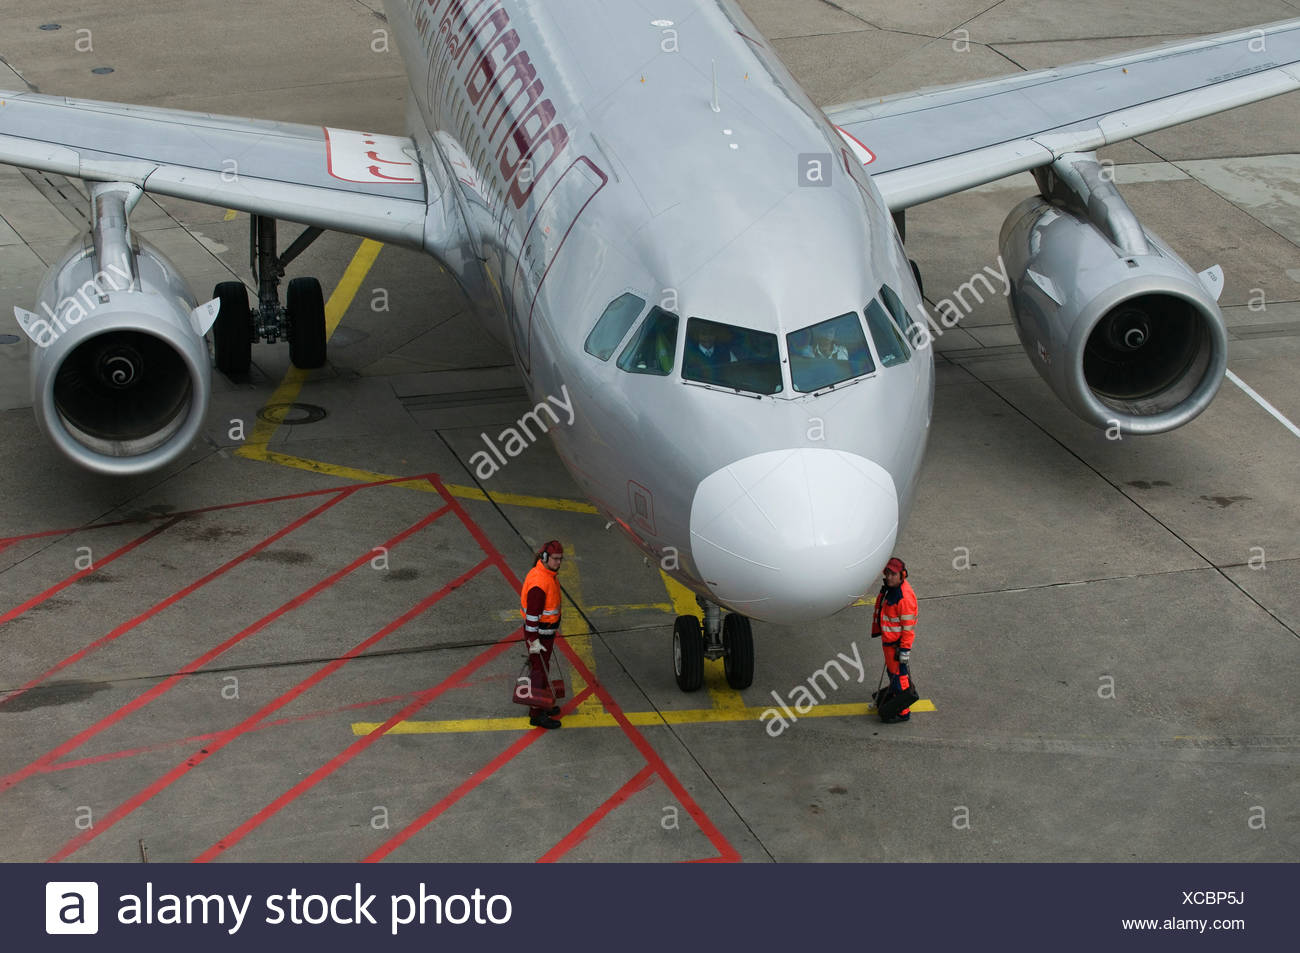 Germanwings aircraft, finishing touches prior to take-off, apron workers at the machine, Cologne Bonn Airport, also called - Stock Image